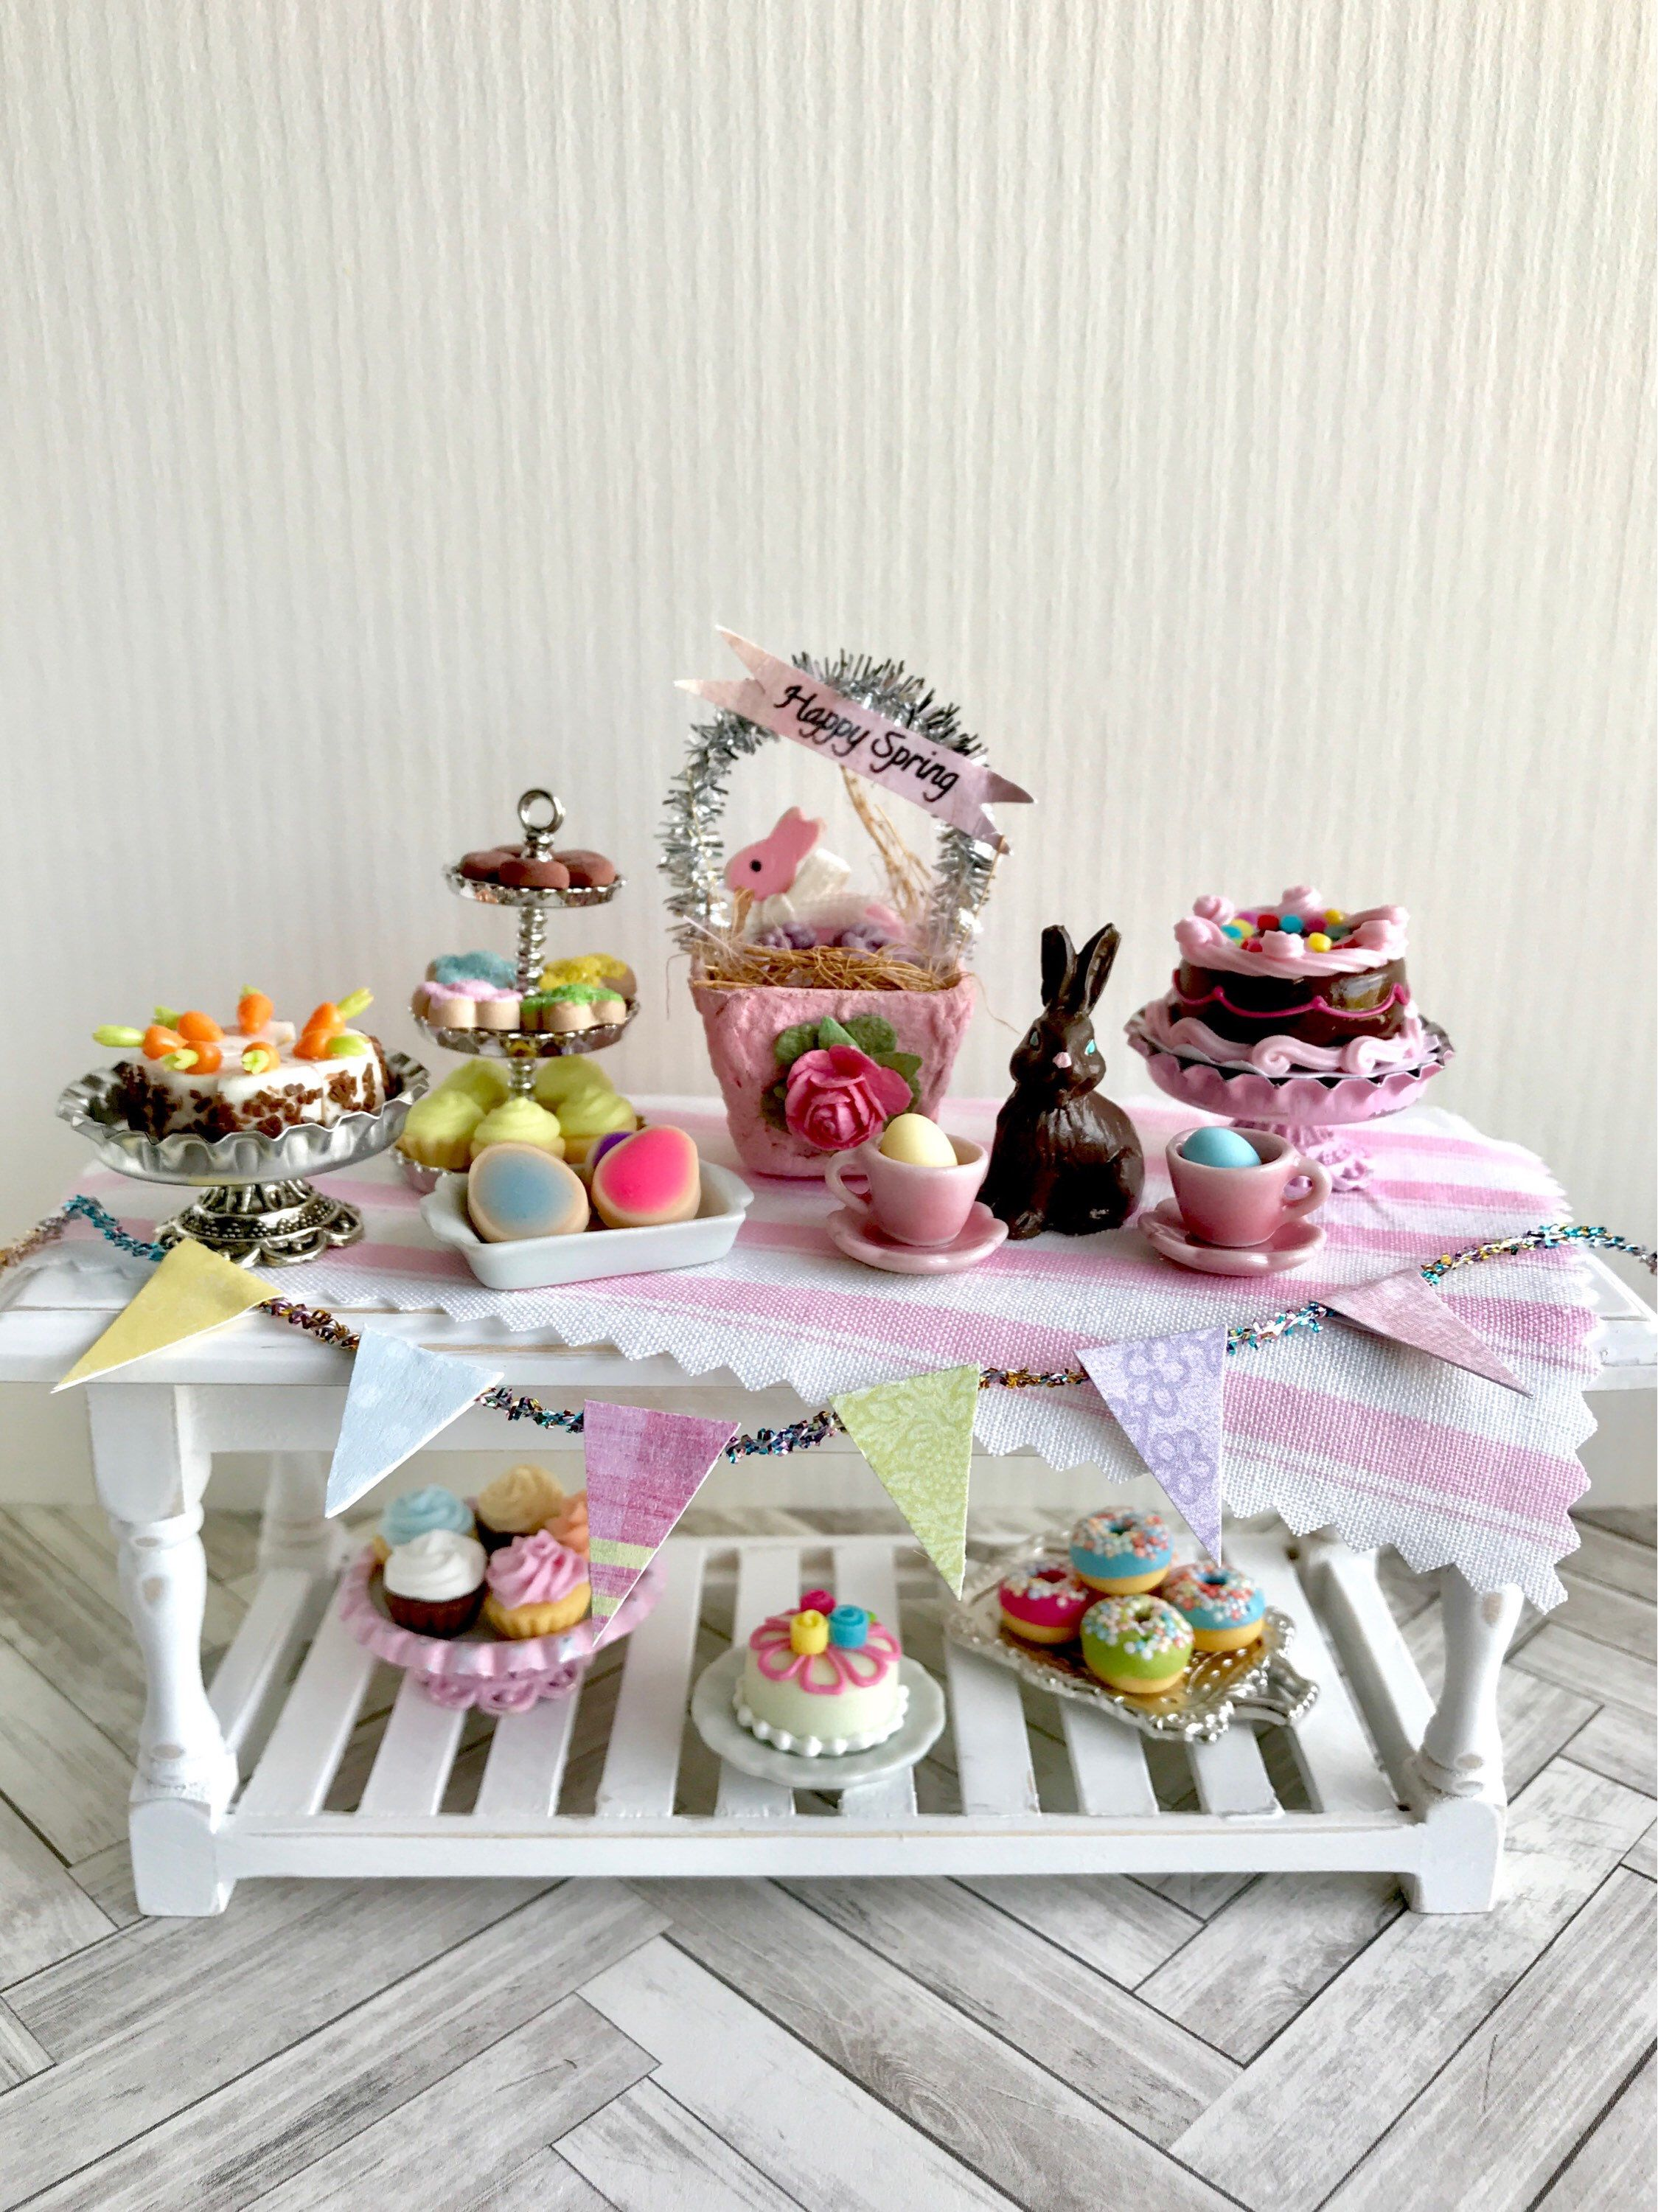 Miniature Easter table Easter dollhouse decorations